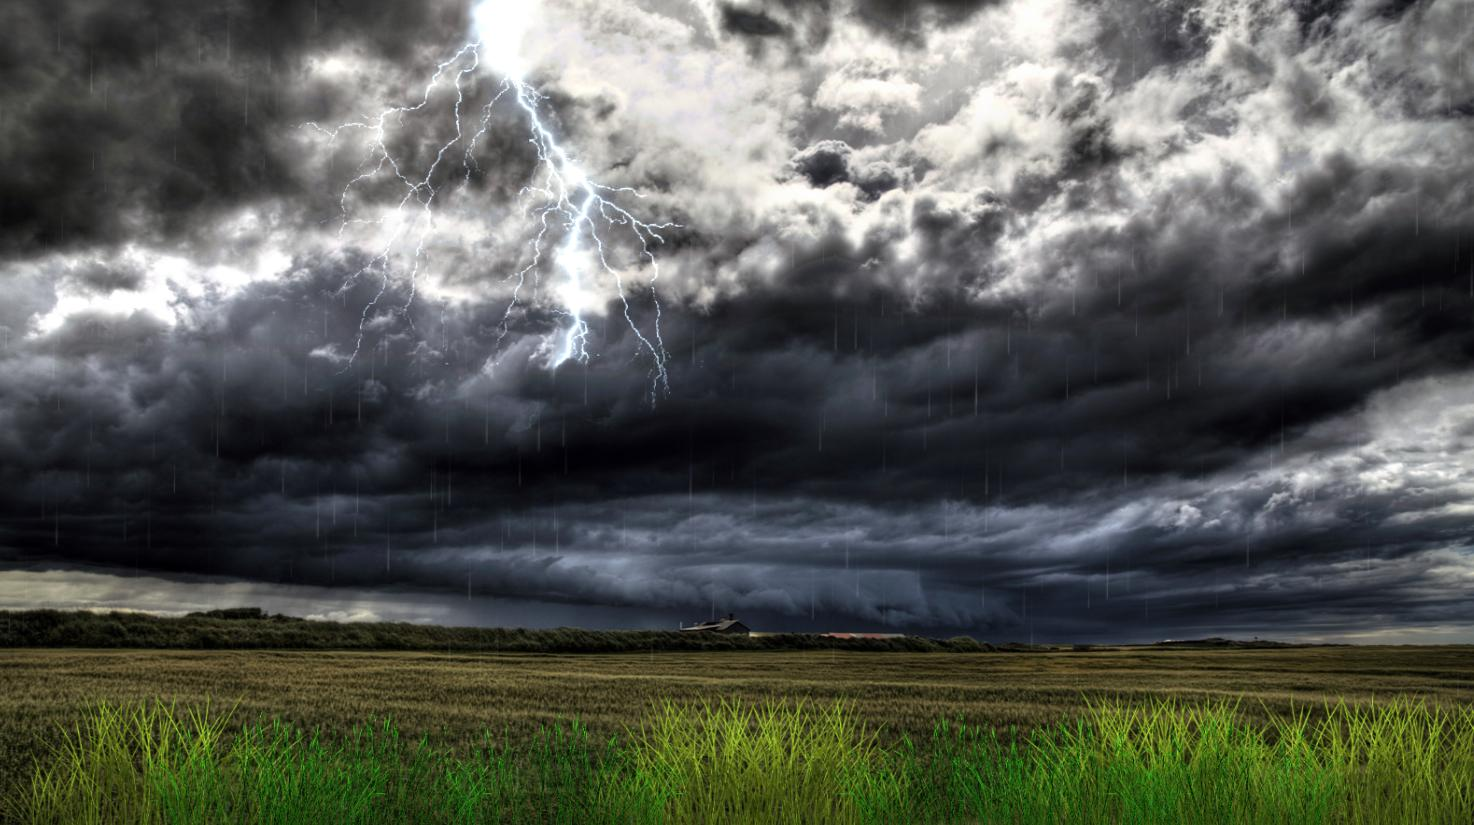 Thunderstorm Backgrounds - Viewing Gallery